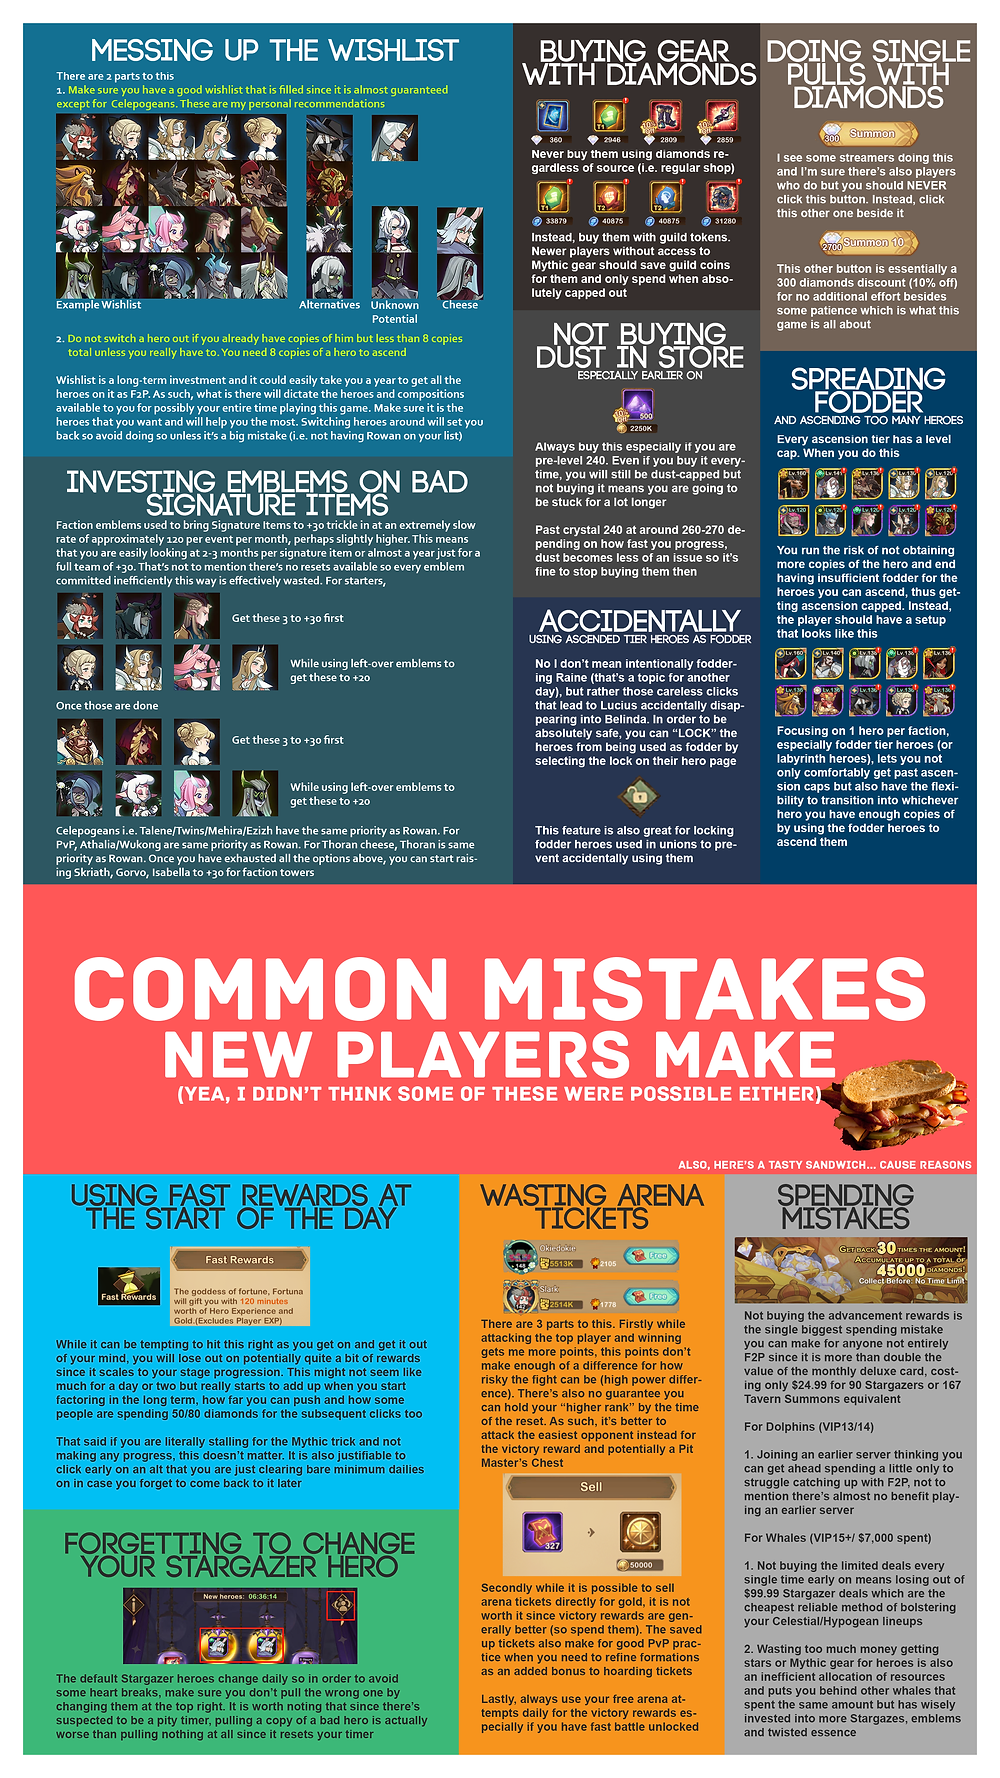 Common Mistakes New Players Make